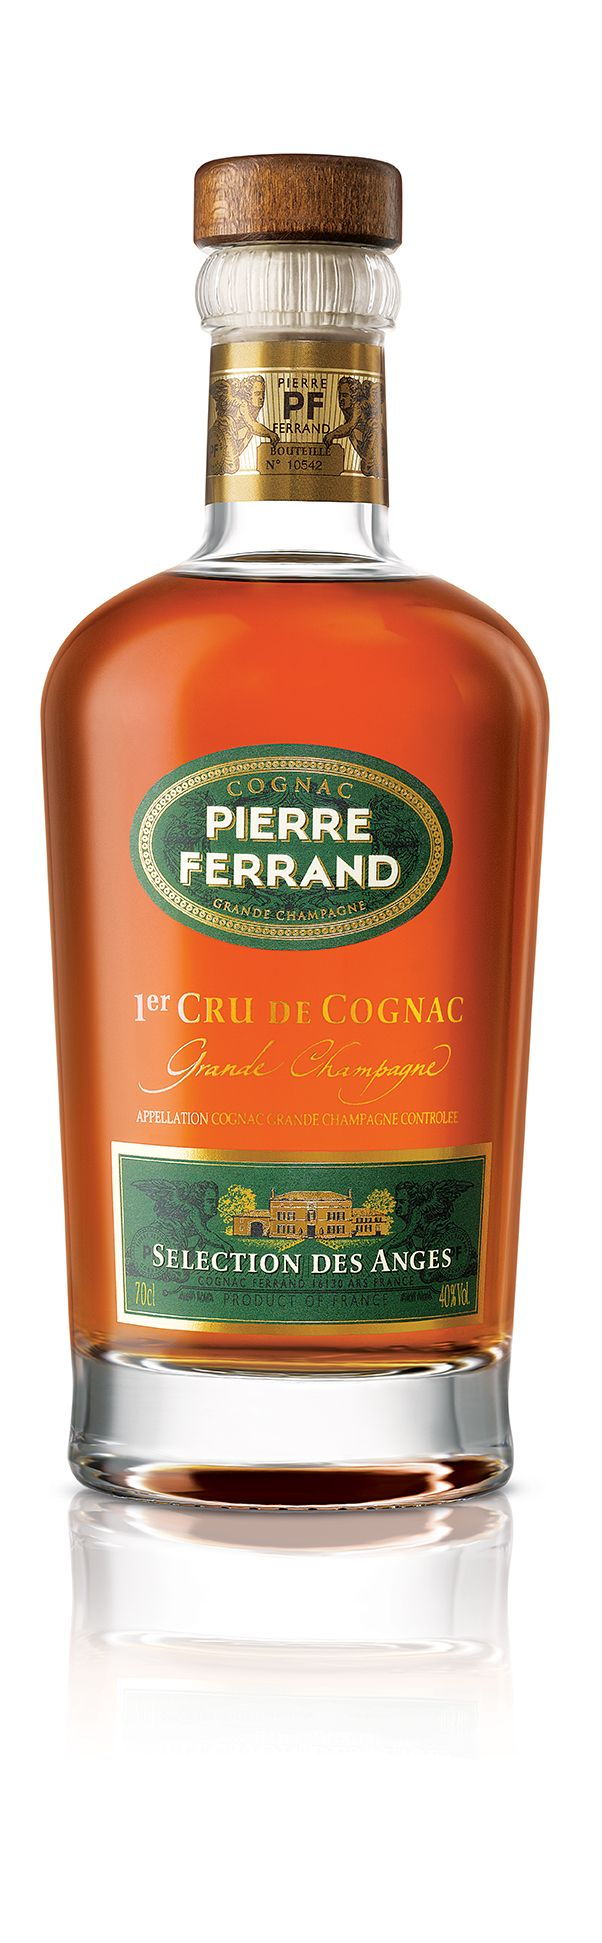 The #PierreFerrand Selection Des Anges #cognac is a blend of Grande Champagne cognacs of average age 30 years.